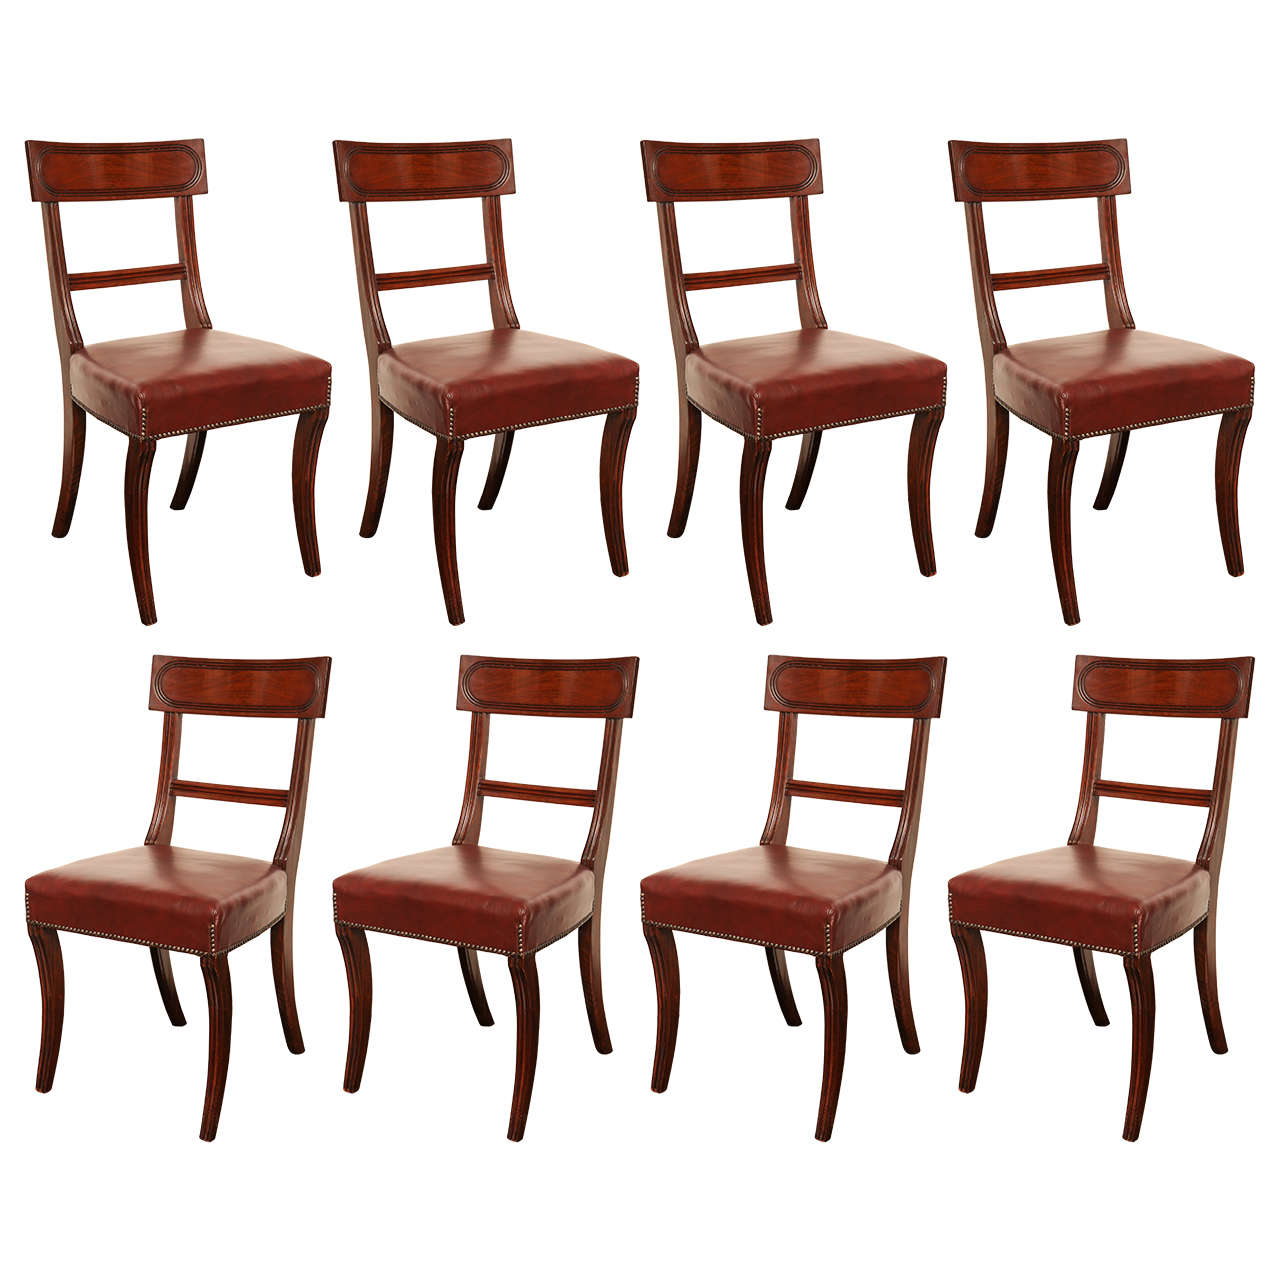 Set of Eight 19th Century English Neoclassical Dining Chairs